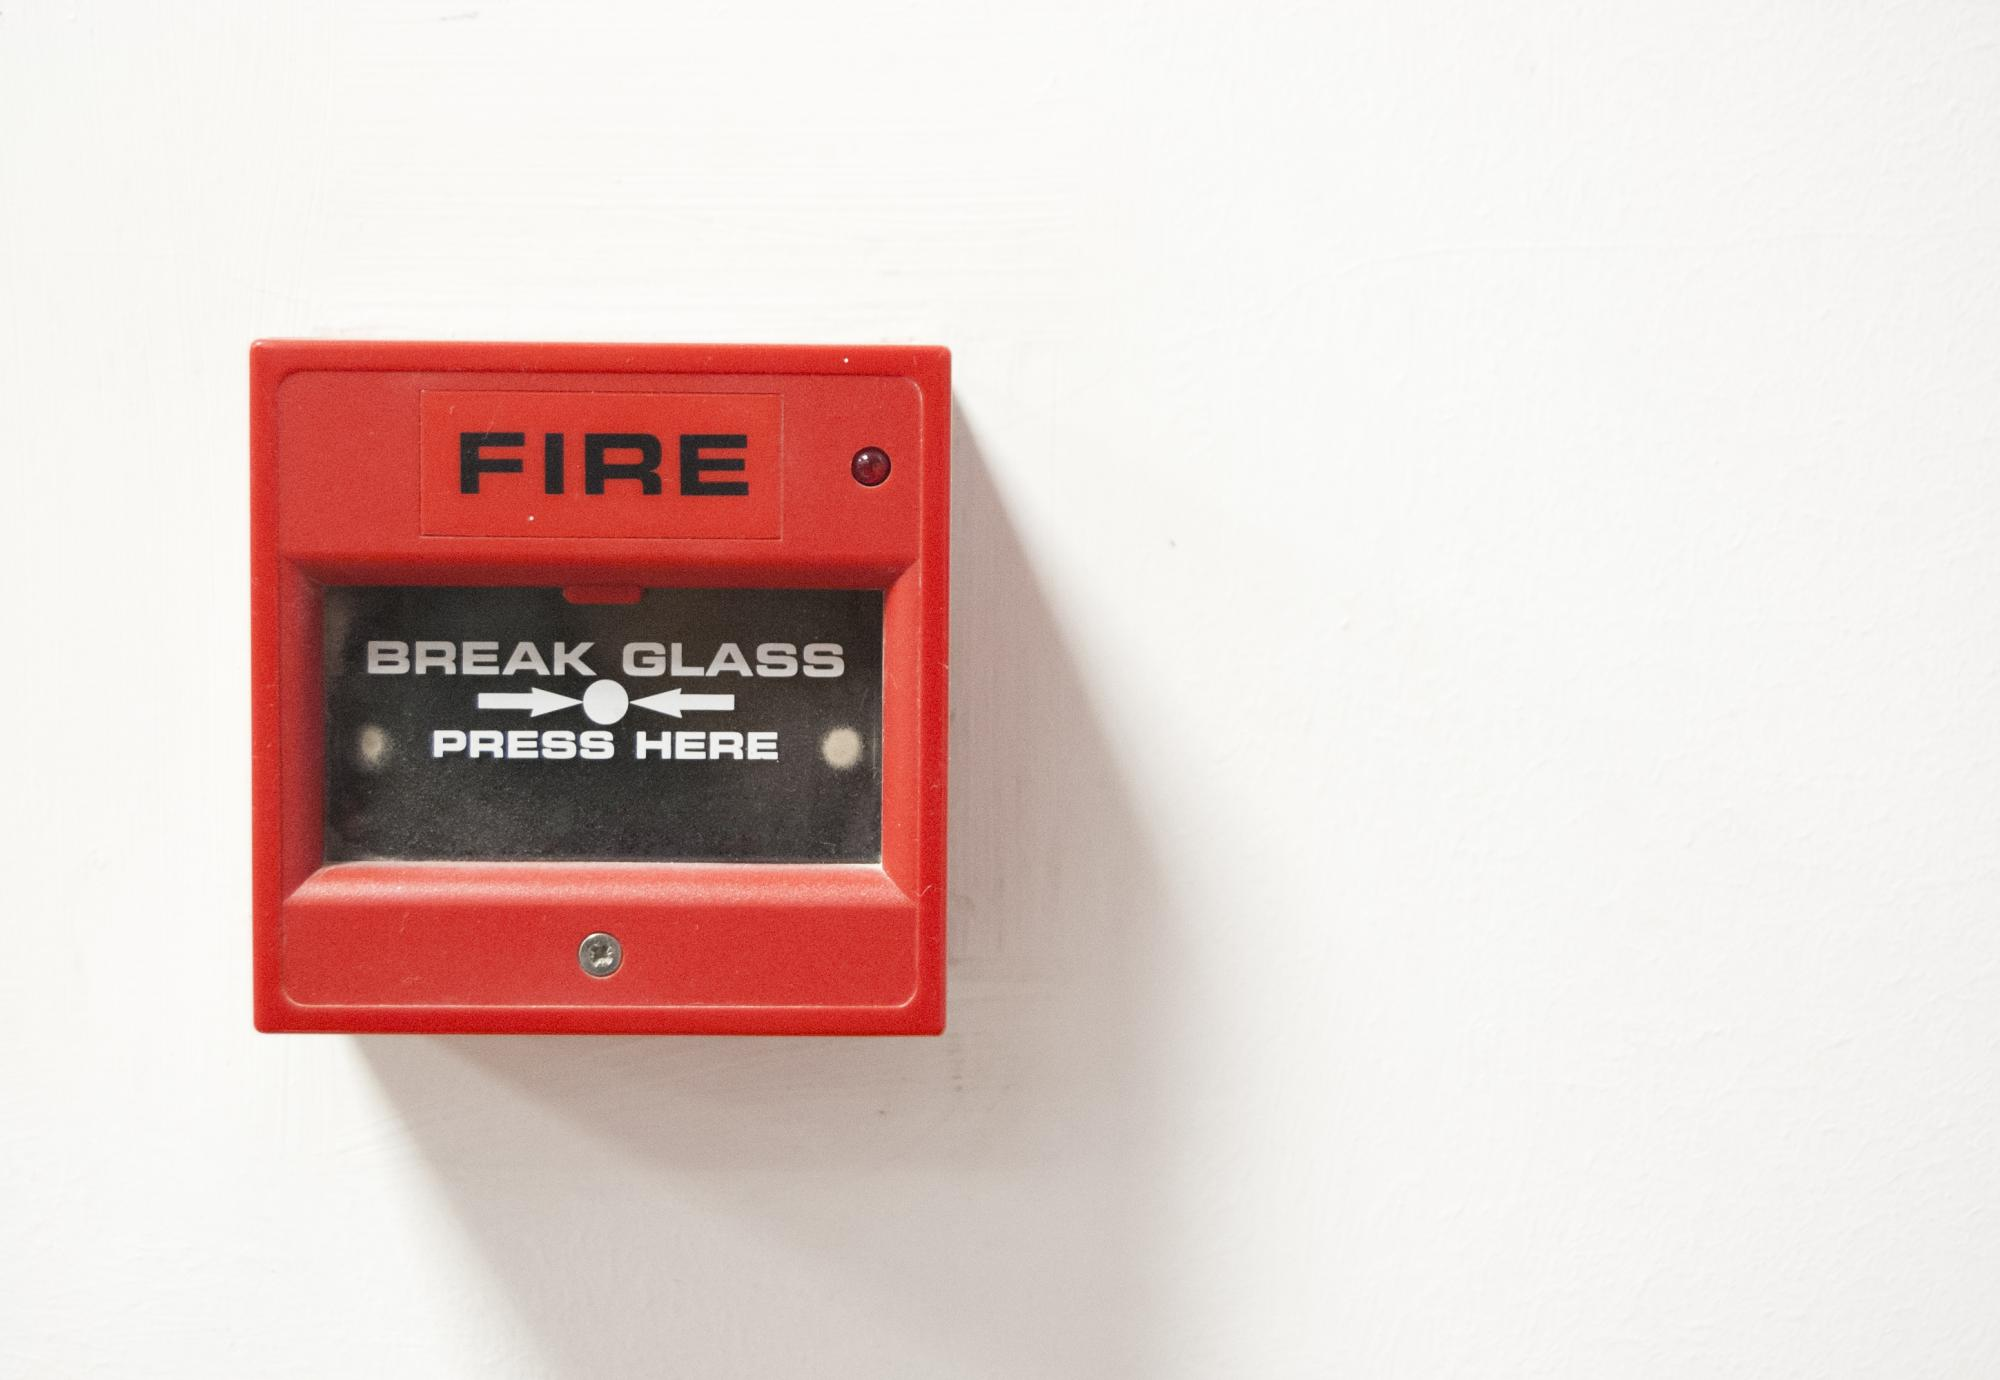 Fire alarm sits on wall ready to be activated.